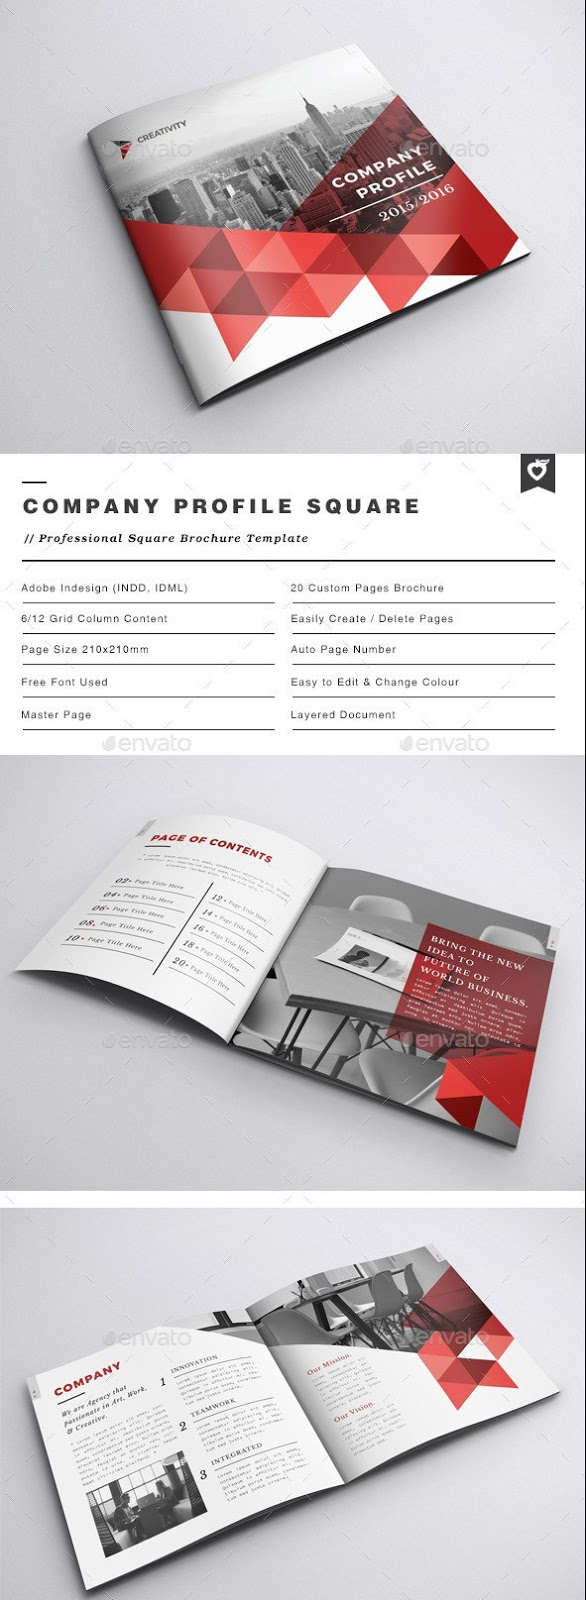 100 free premium brochure templates photoshop psd for Brochure templates for photoshop